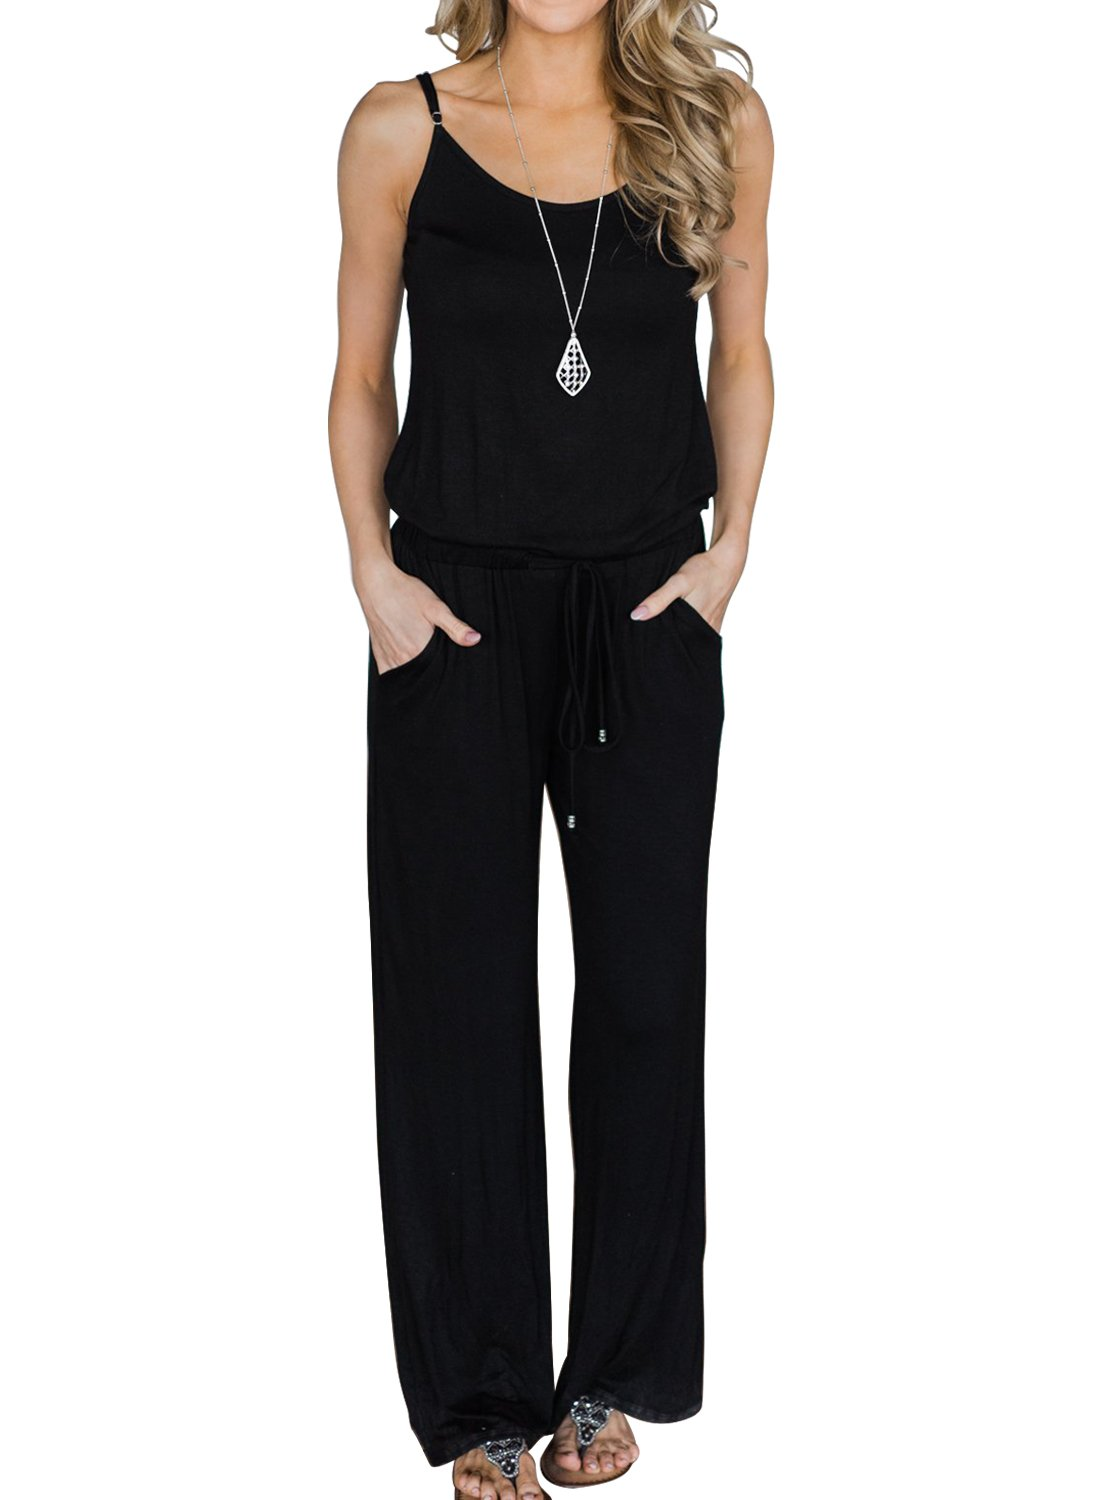 MIHOLL Women's Summer Striped Jumpsuit Casual Loose Sleeveless Jumpsuit Rompers (Large, B-Black)